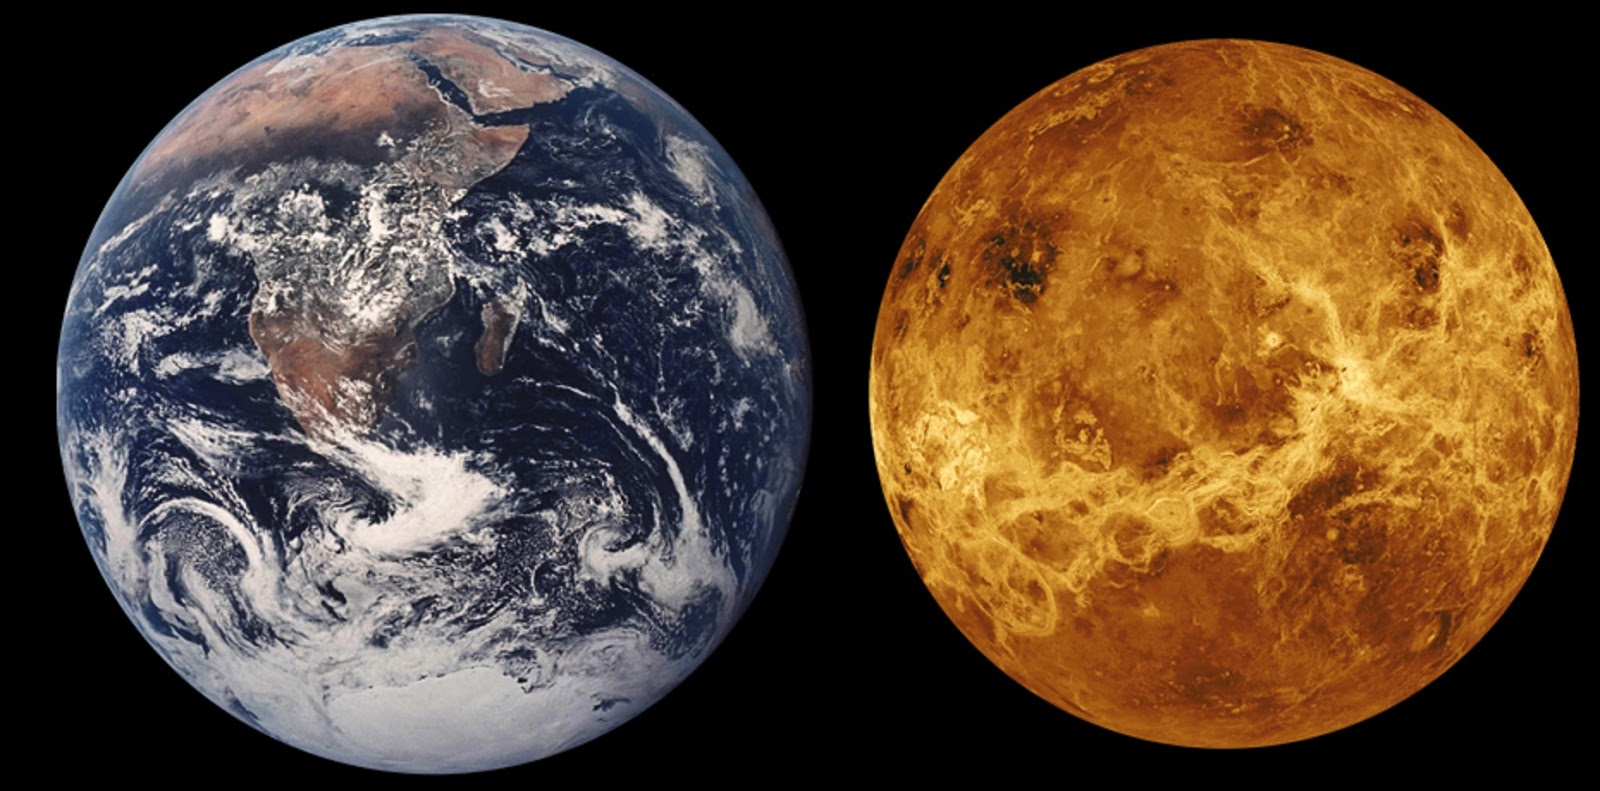 venus compared to earth